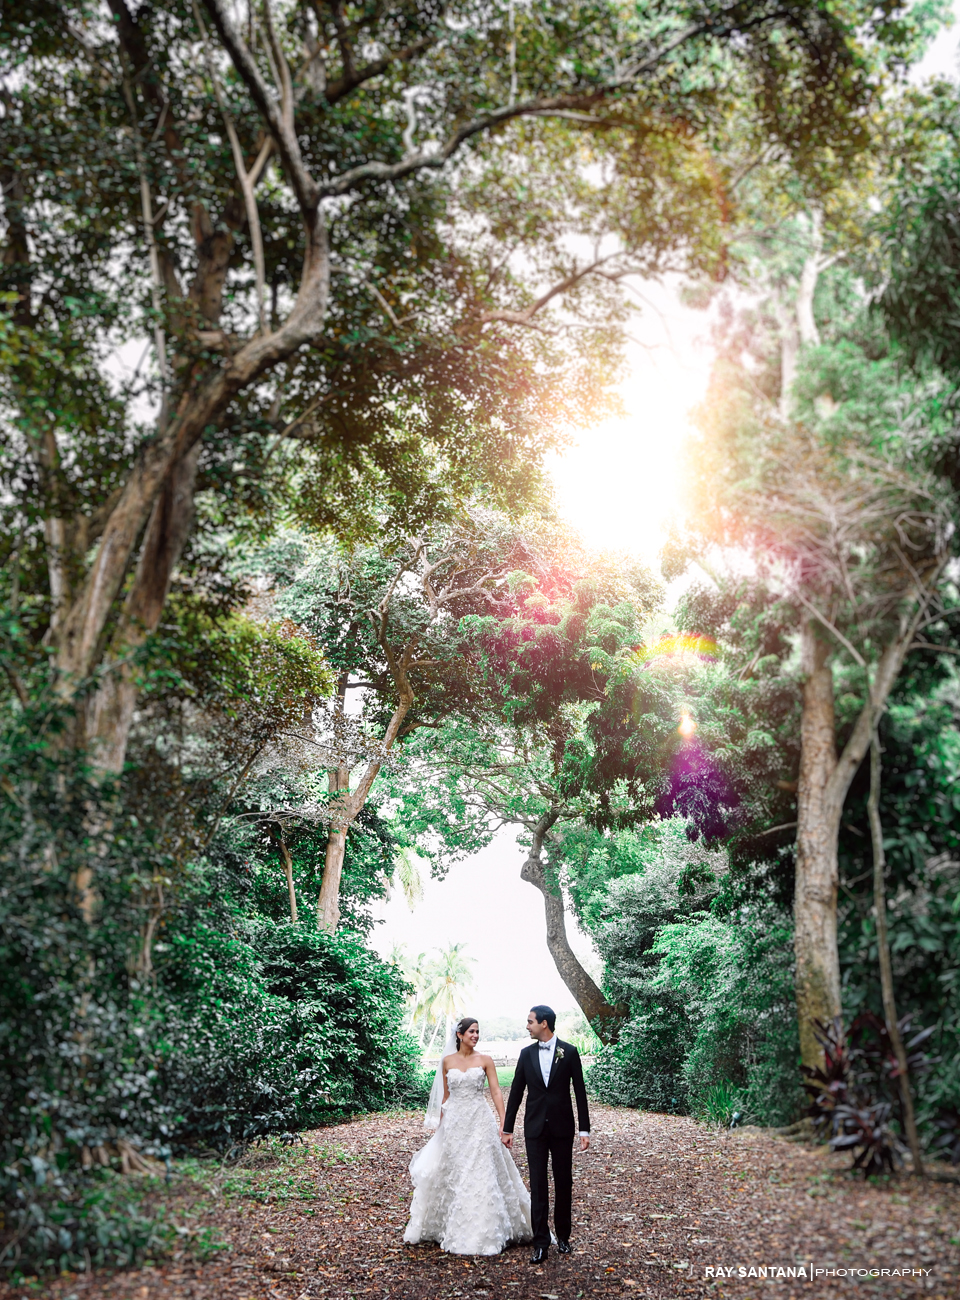 WEDDING-PHOTOGRAPHY-FAIRCHILD-TROPICAL-GARDEN